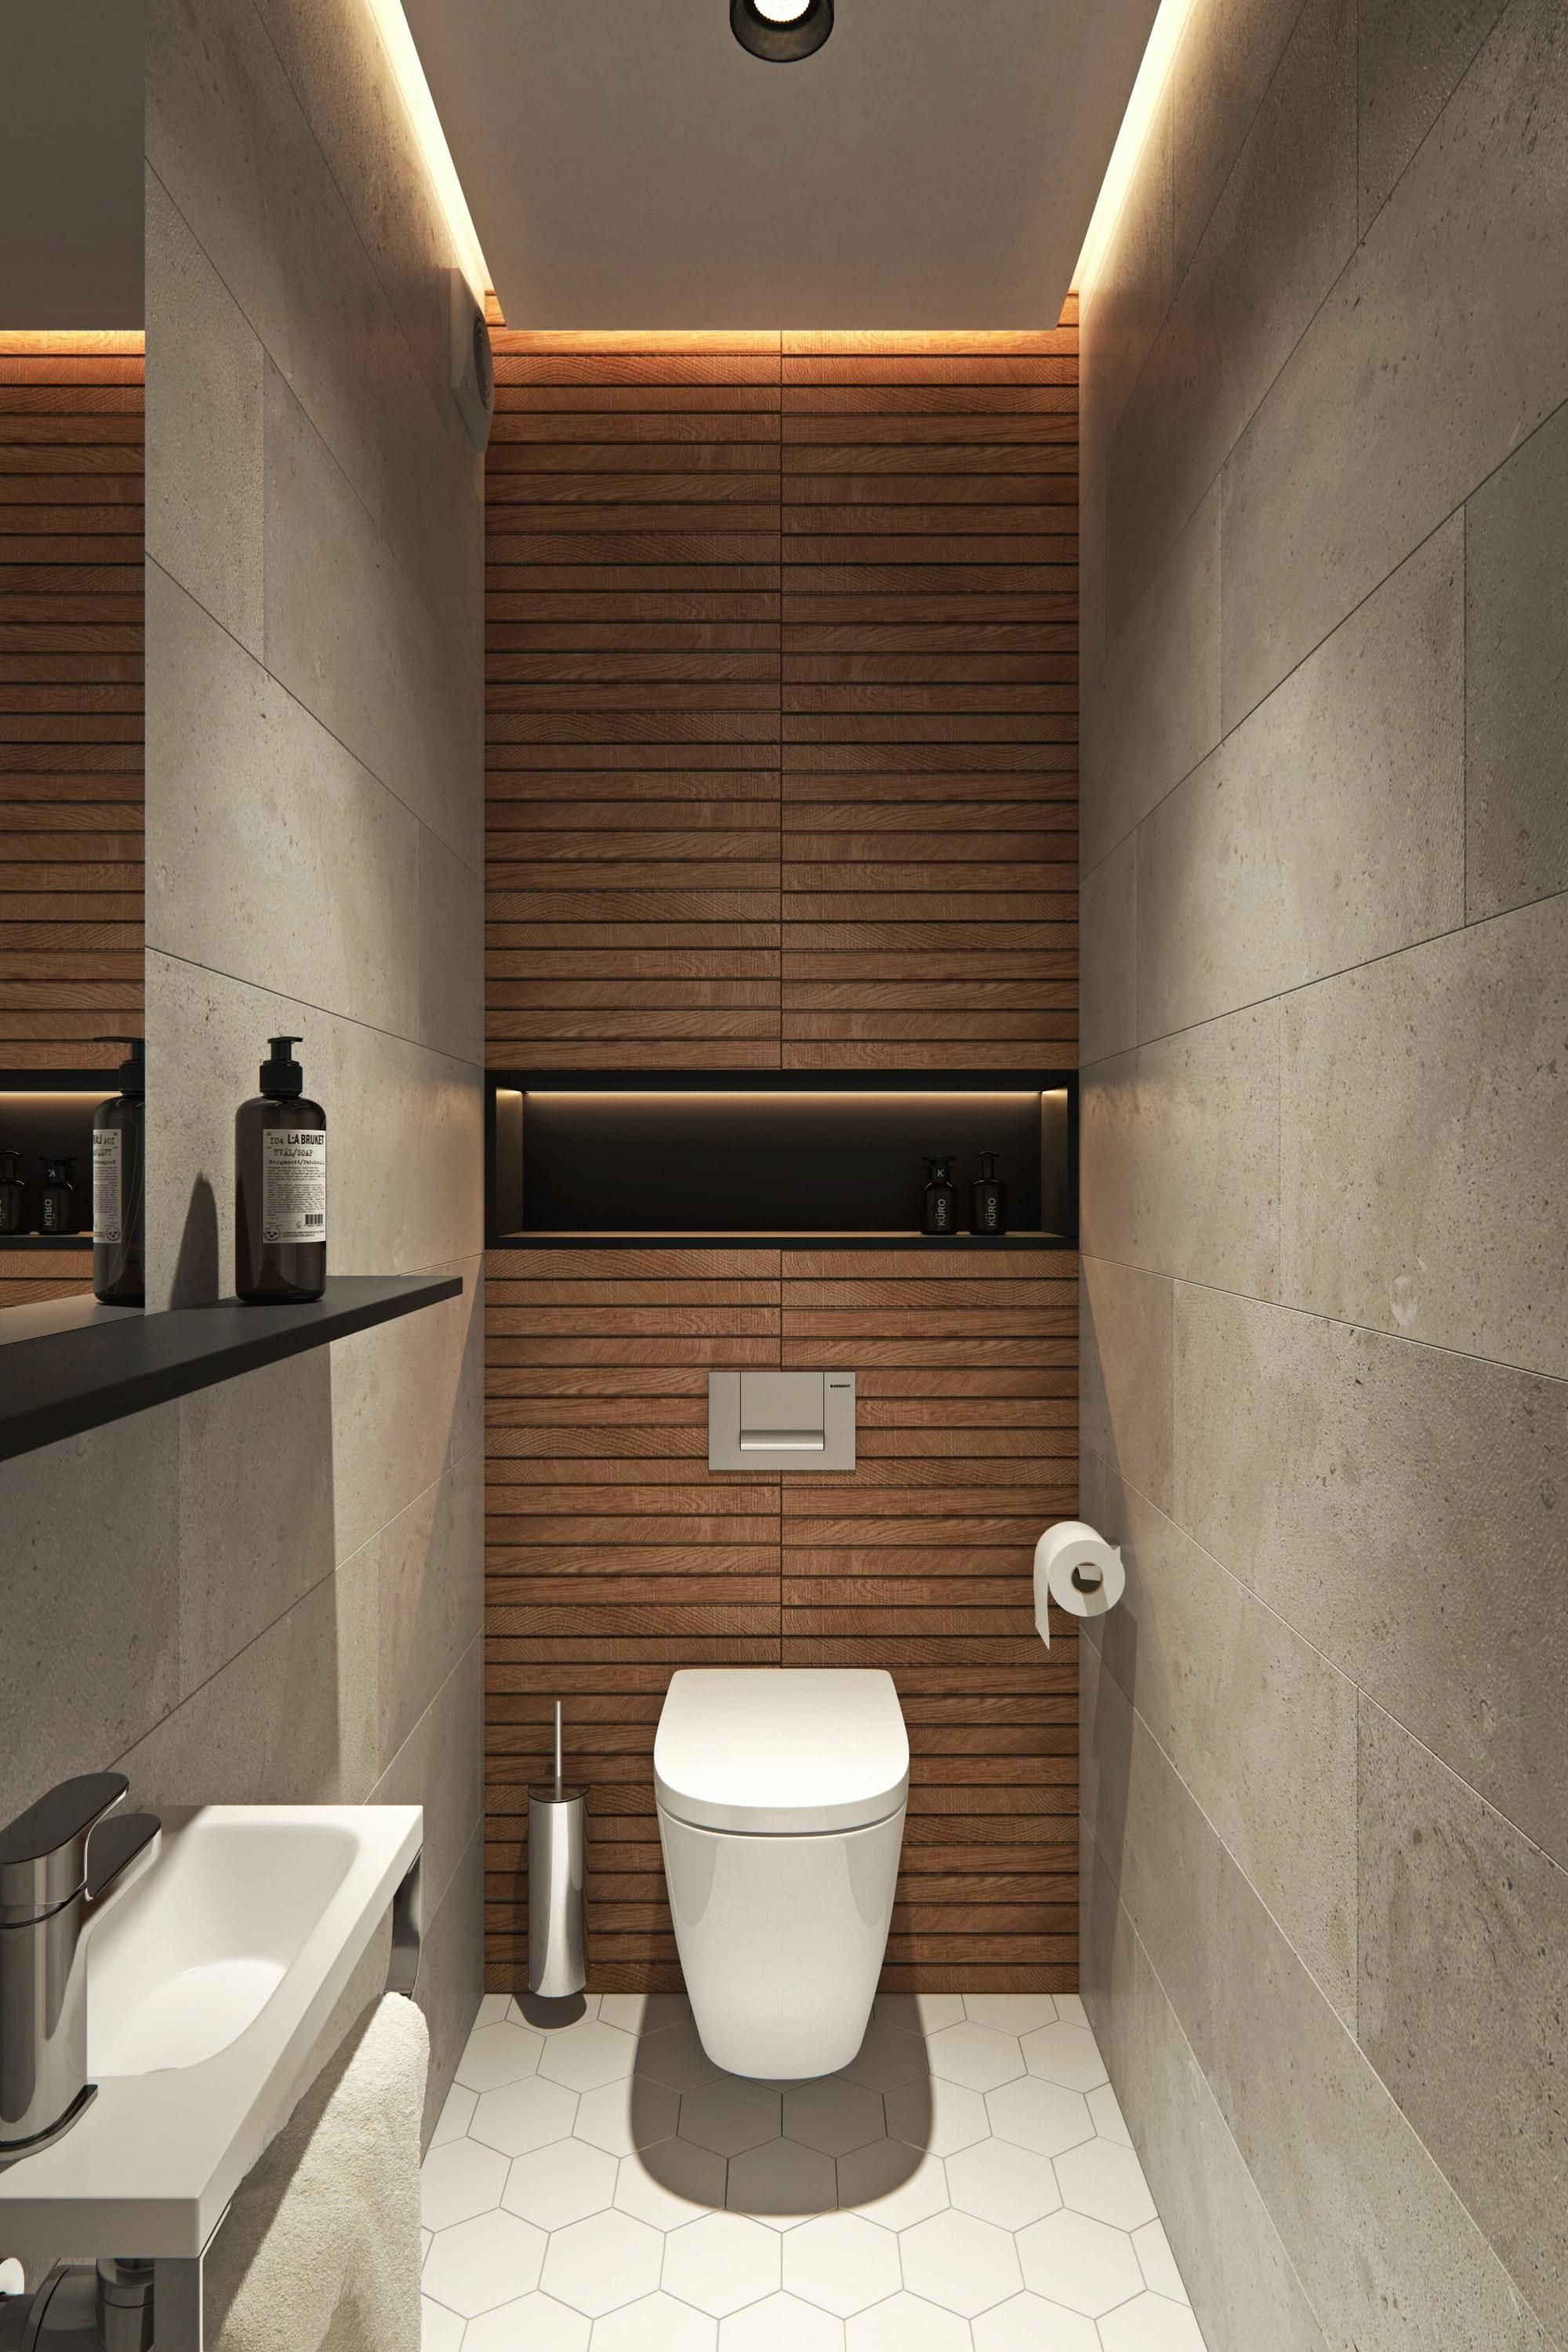 Interior Design Project In Contemporary Style Modern Home In Moskva On Dwell Contemporarybathroomdesi Top Bathroom Design Bathroom Interior Design Wc Design